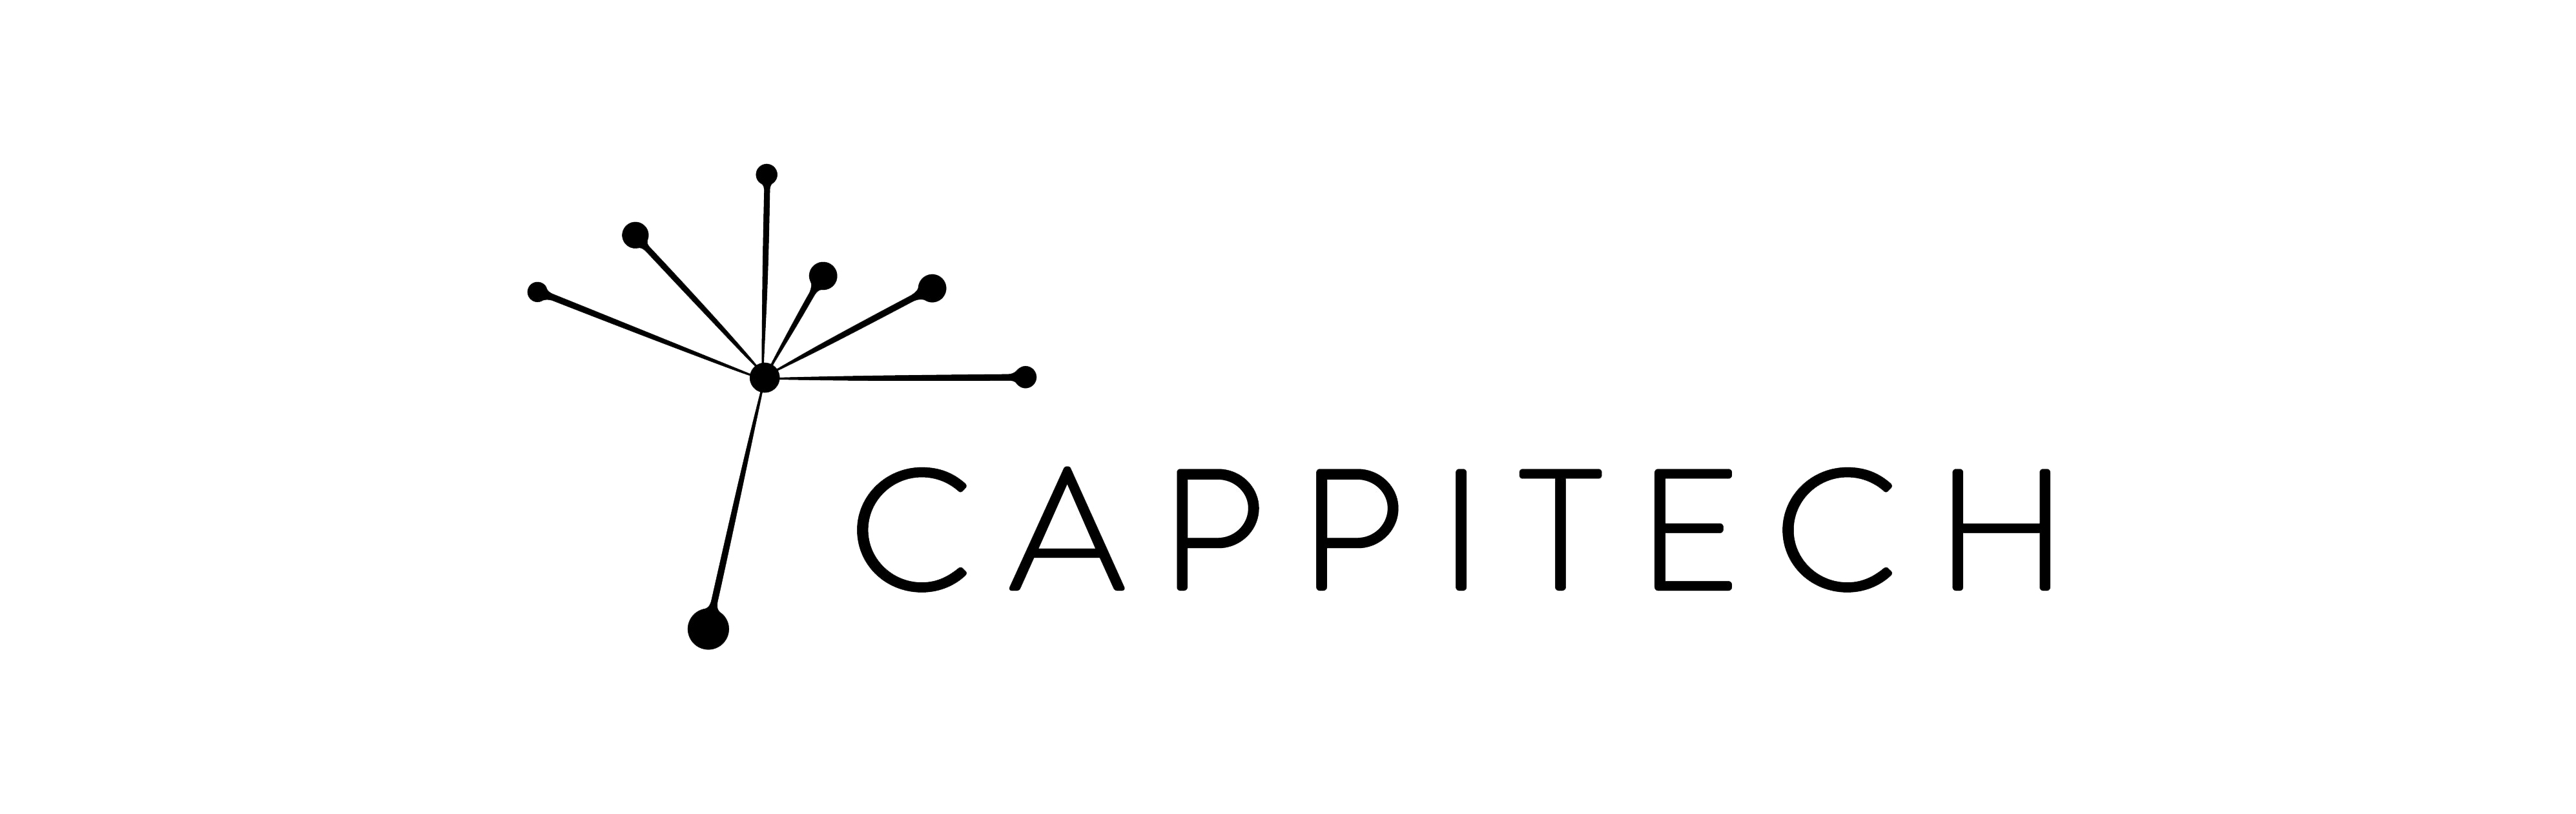 Cappitech Appoints Sales Manager For Switzerland, France, Luxembourg And Belgium